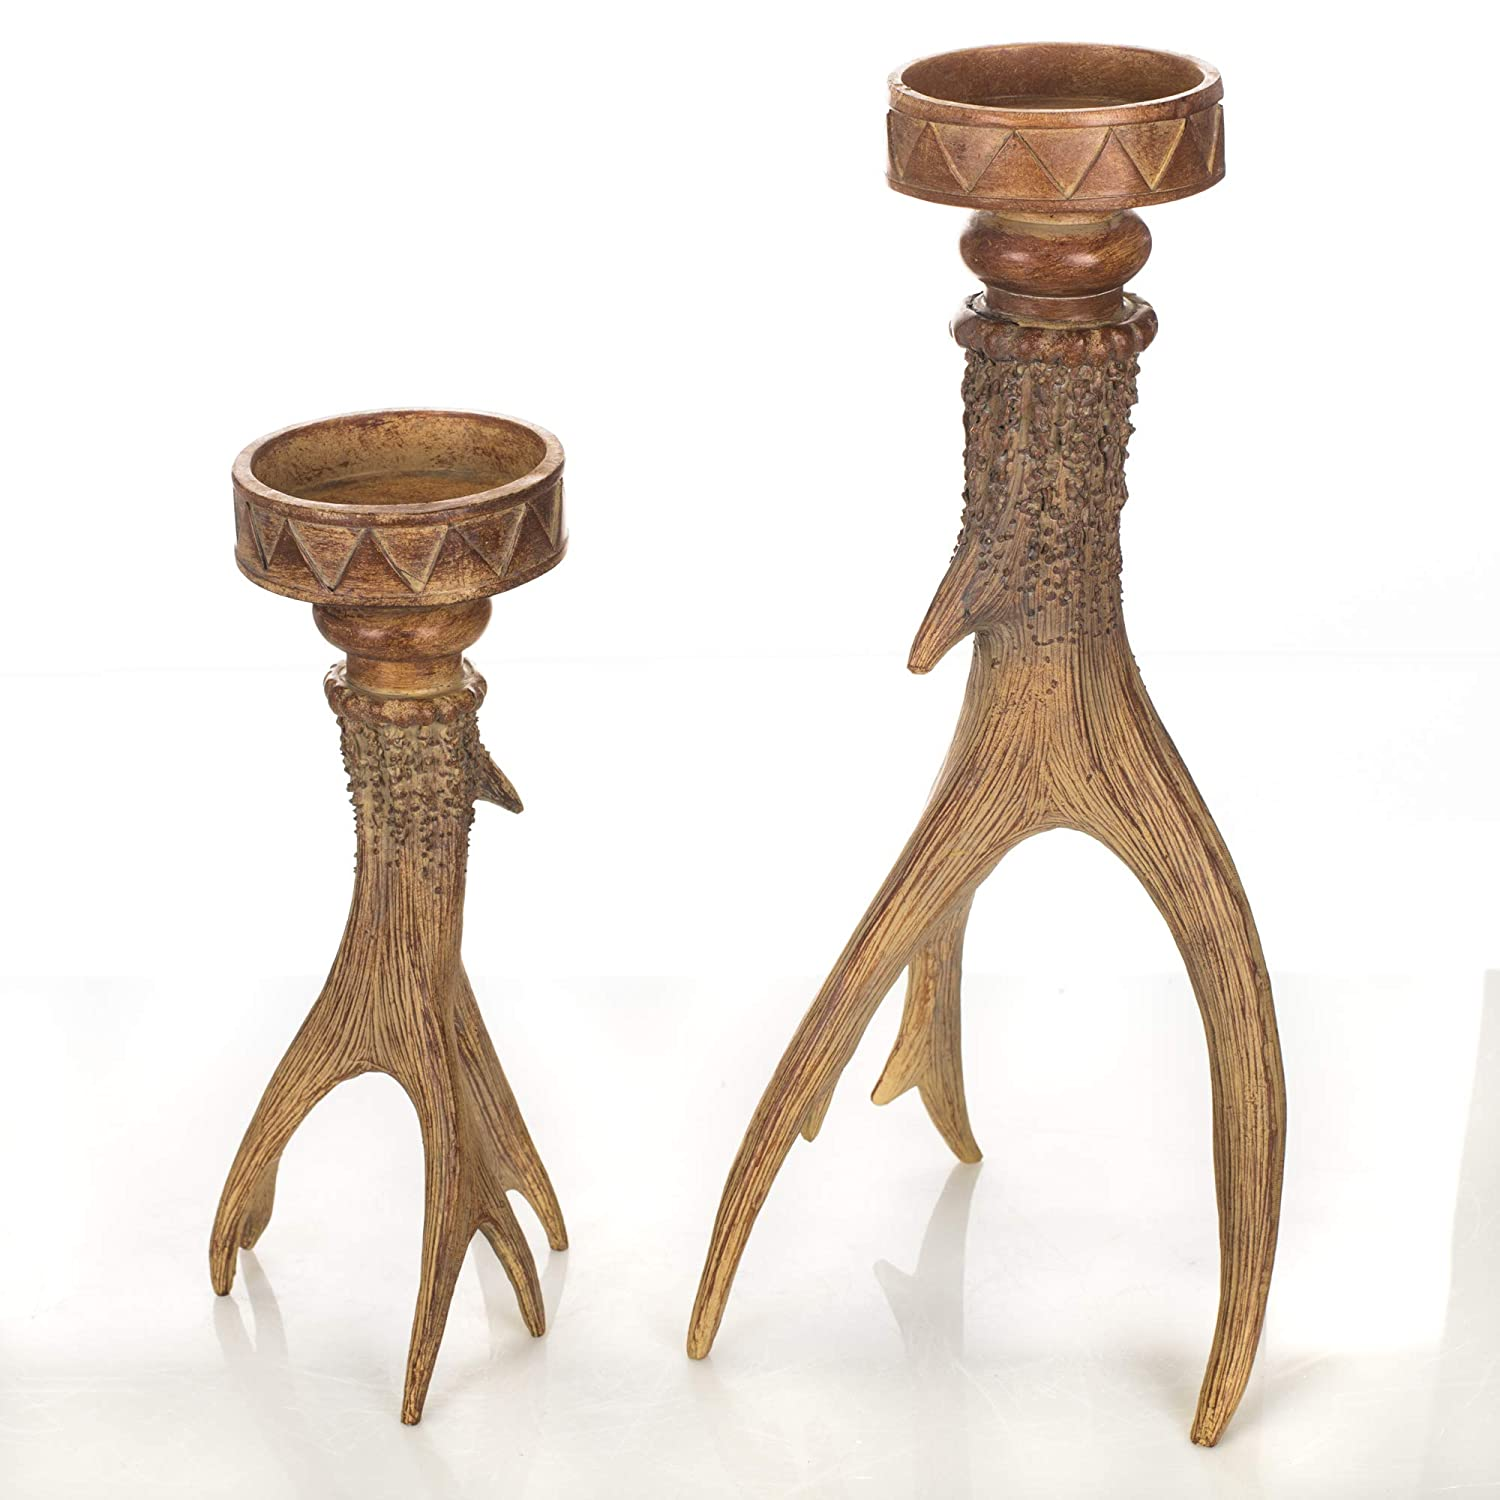 Drew Derose Antler Natural Brown 16 And 11 Inch Resin Stone Candle Stick Holders Set of 2